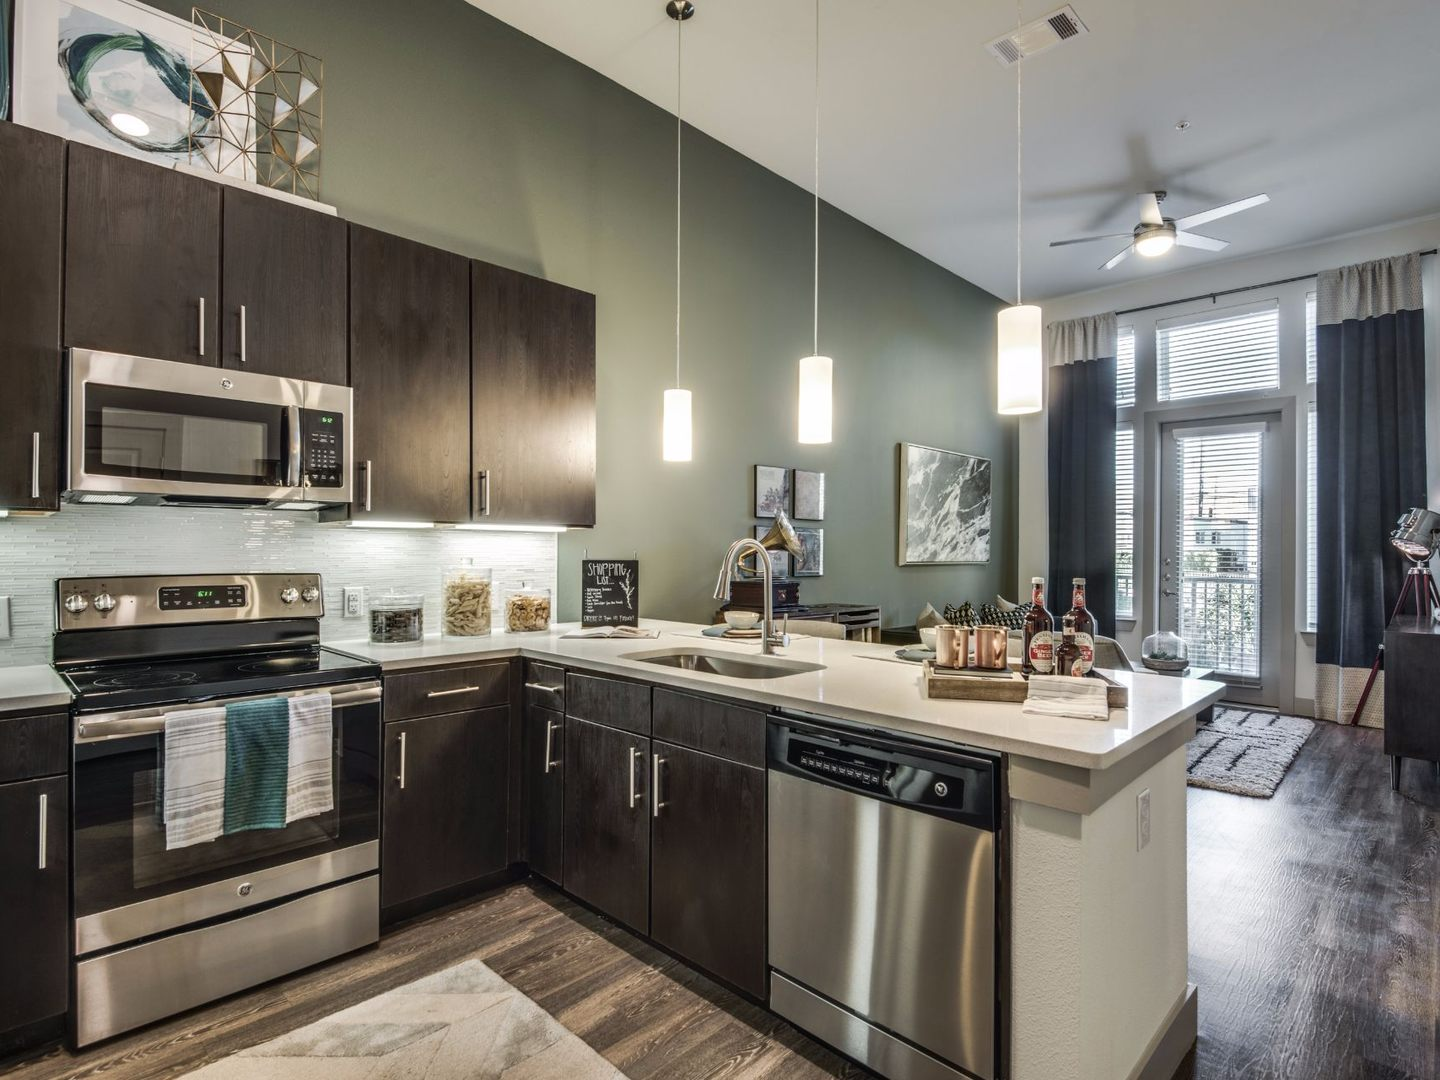 Apartment kitchen with stainless steel appliances and view of living room